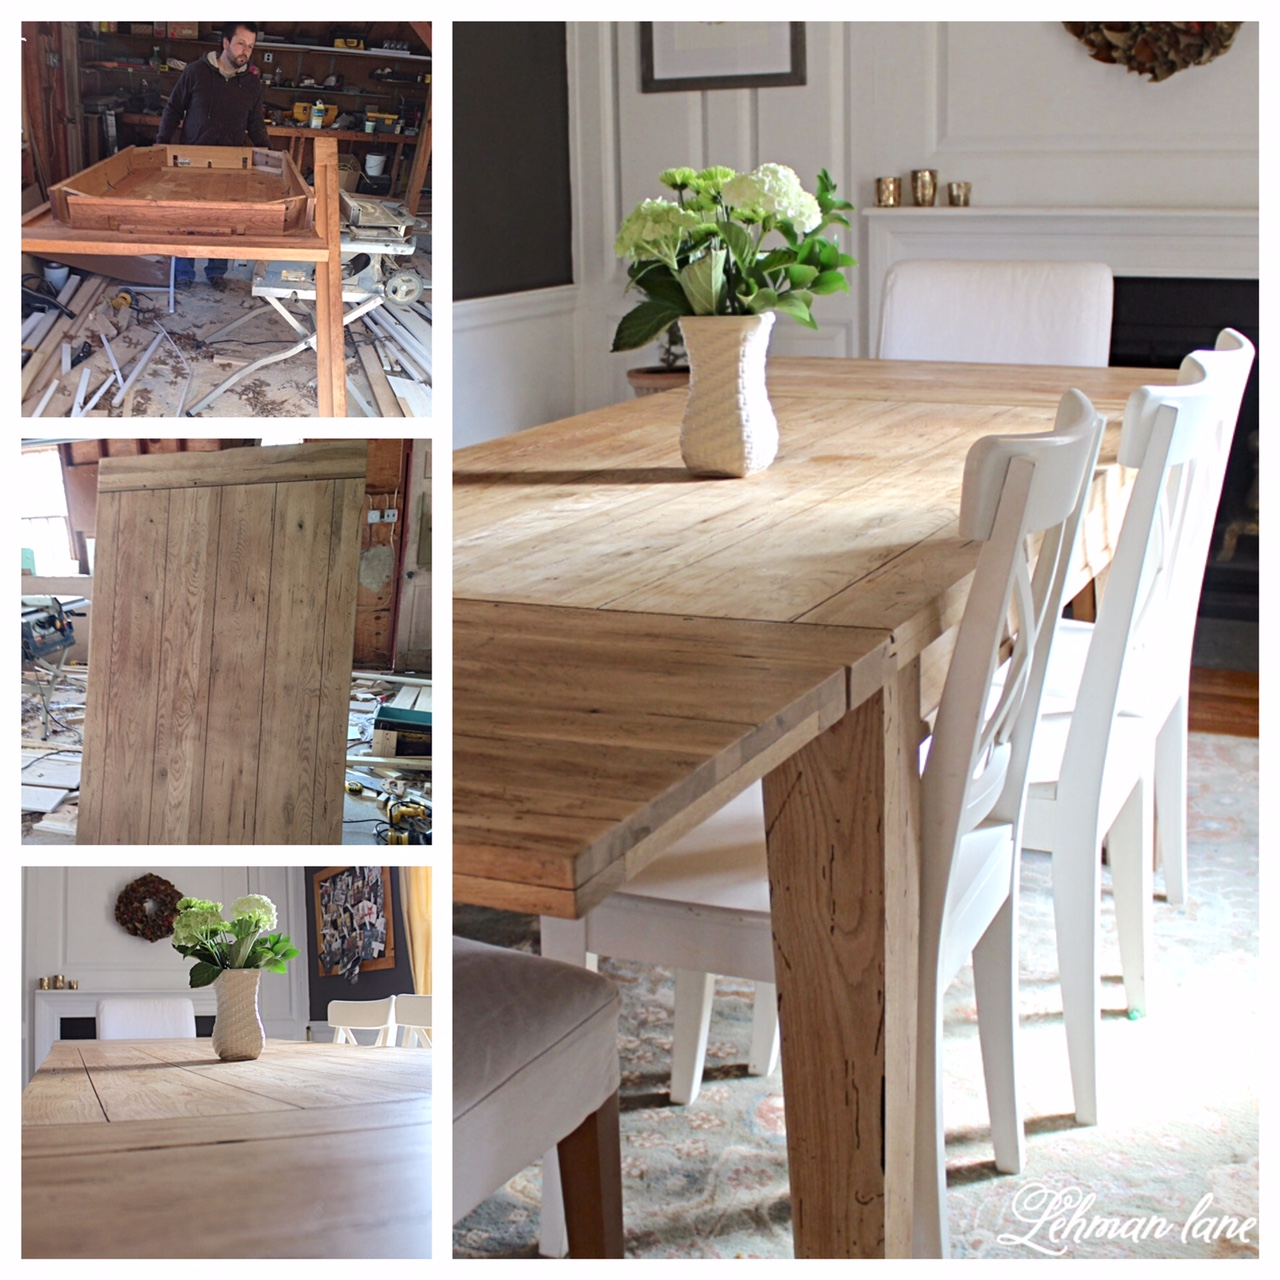 Restoration Hardware Inspired Farmhouse Table